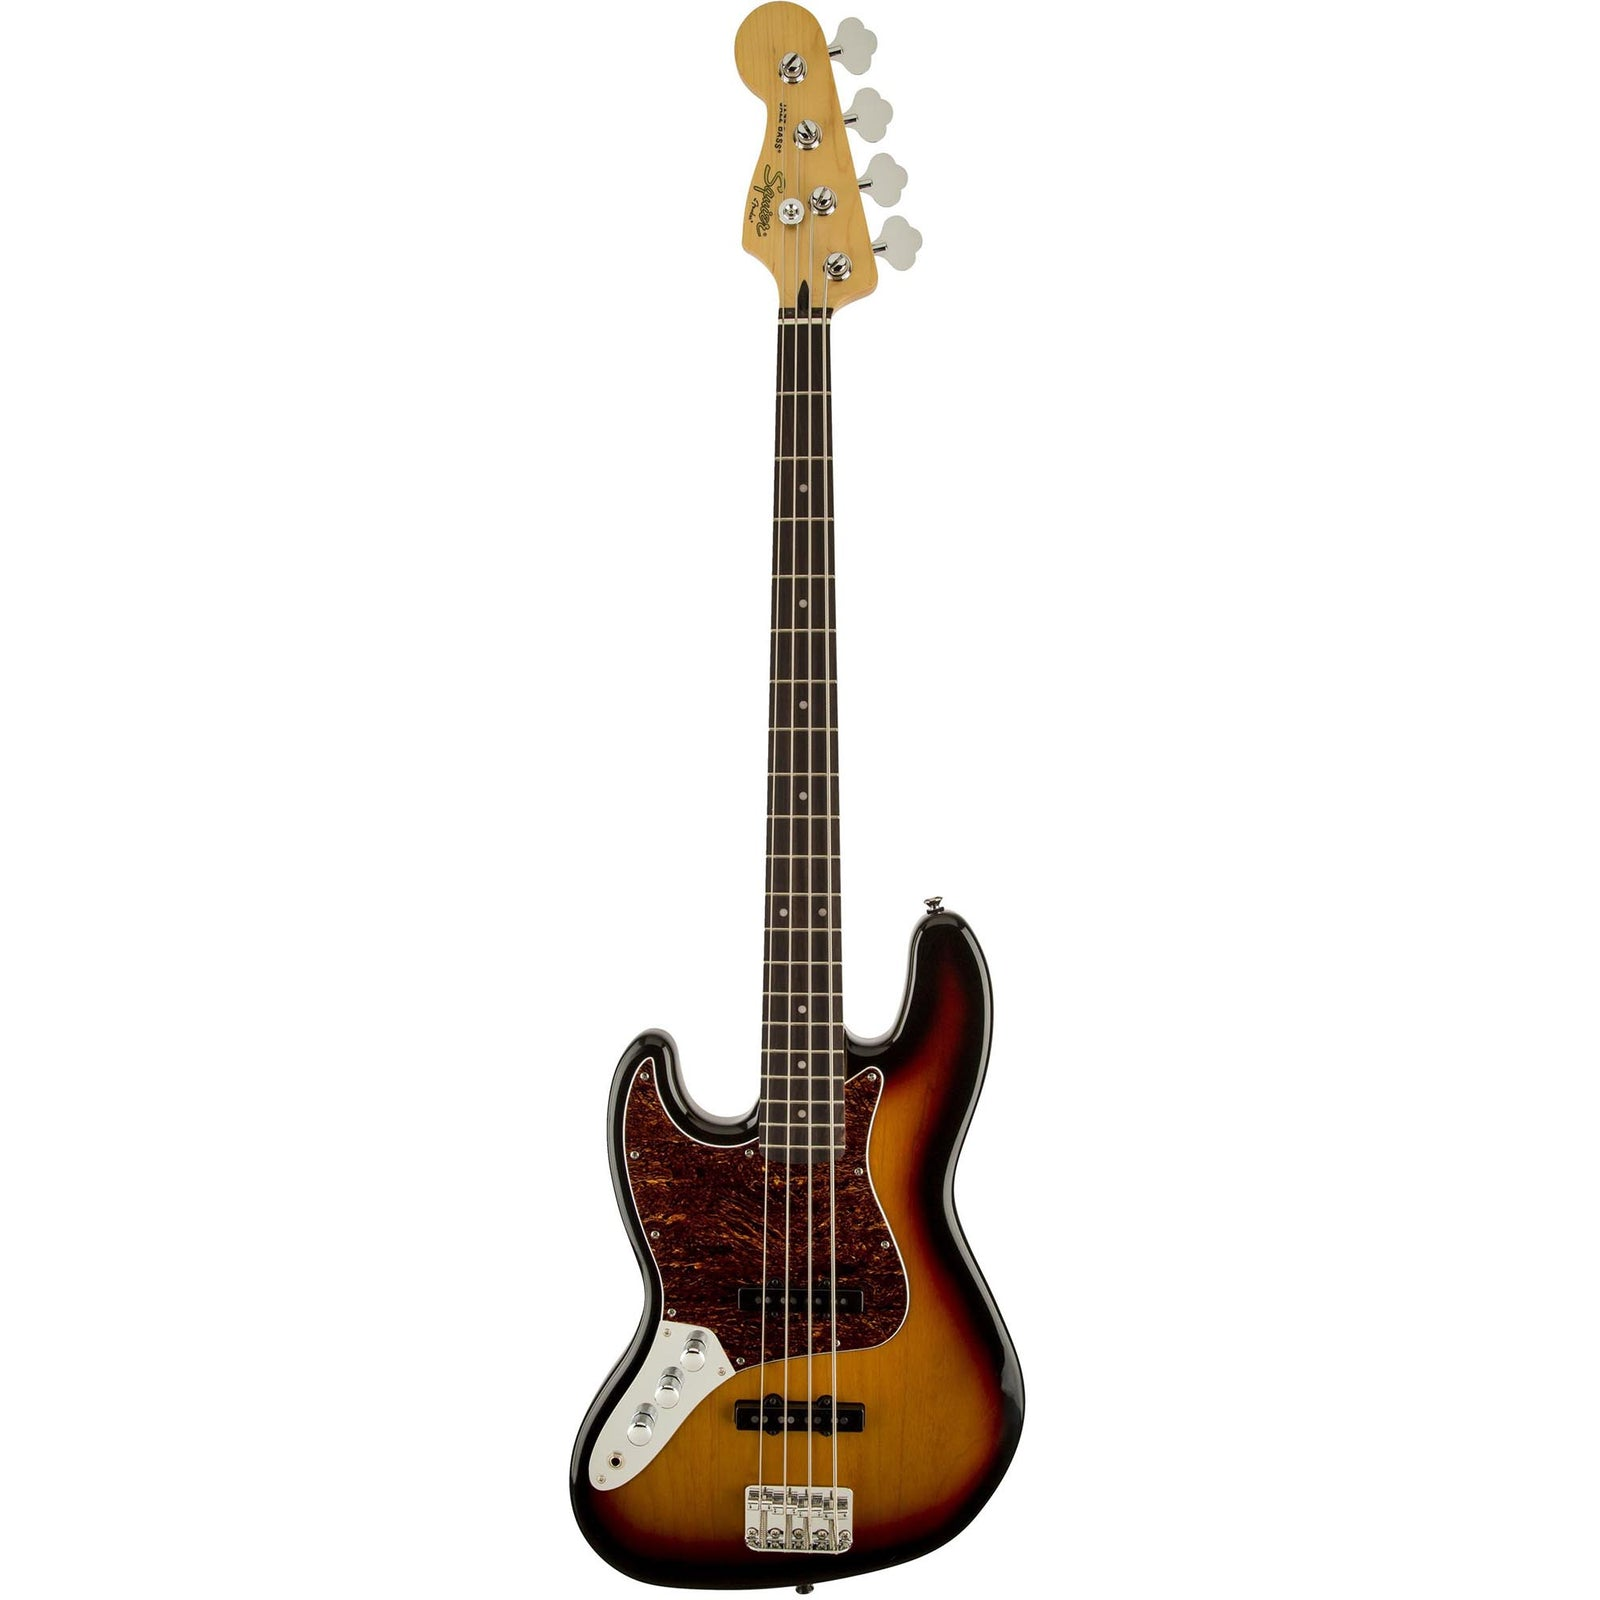 Squier Vintage Modified Jazz Bass Left-Handed - Indian Laurel - 3-Color Sunburst